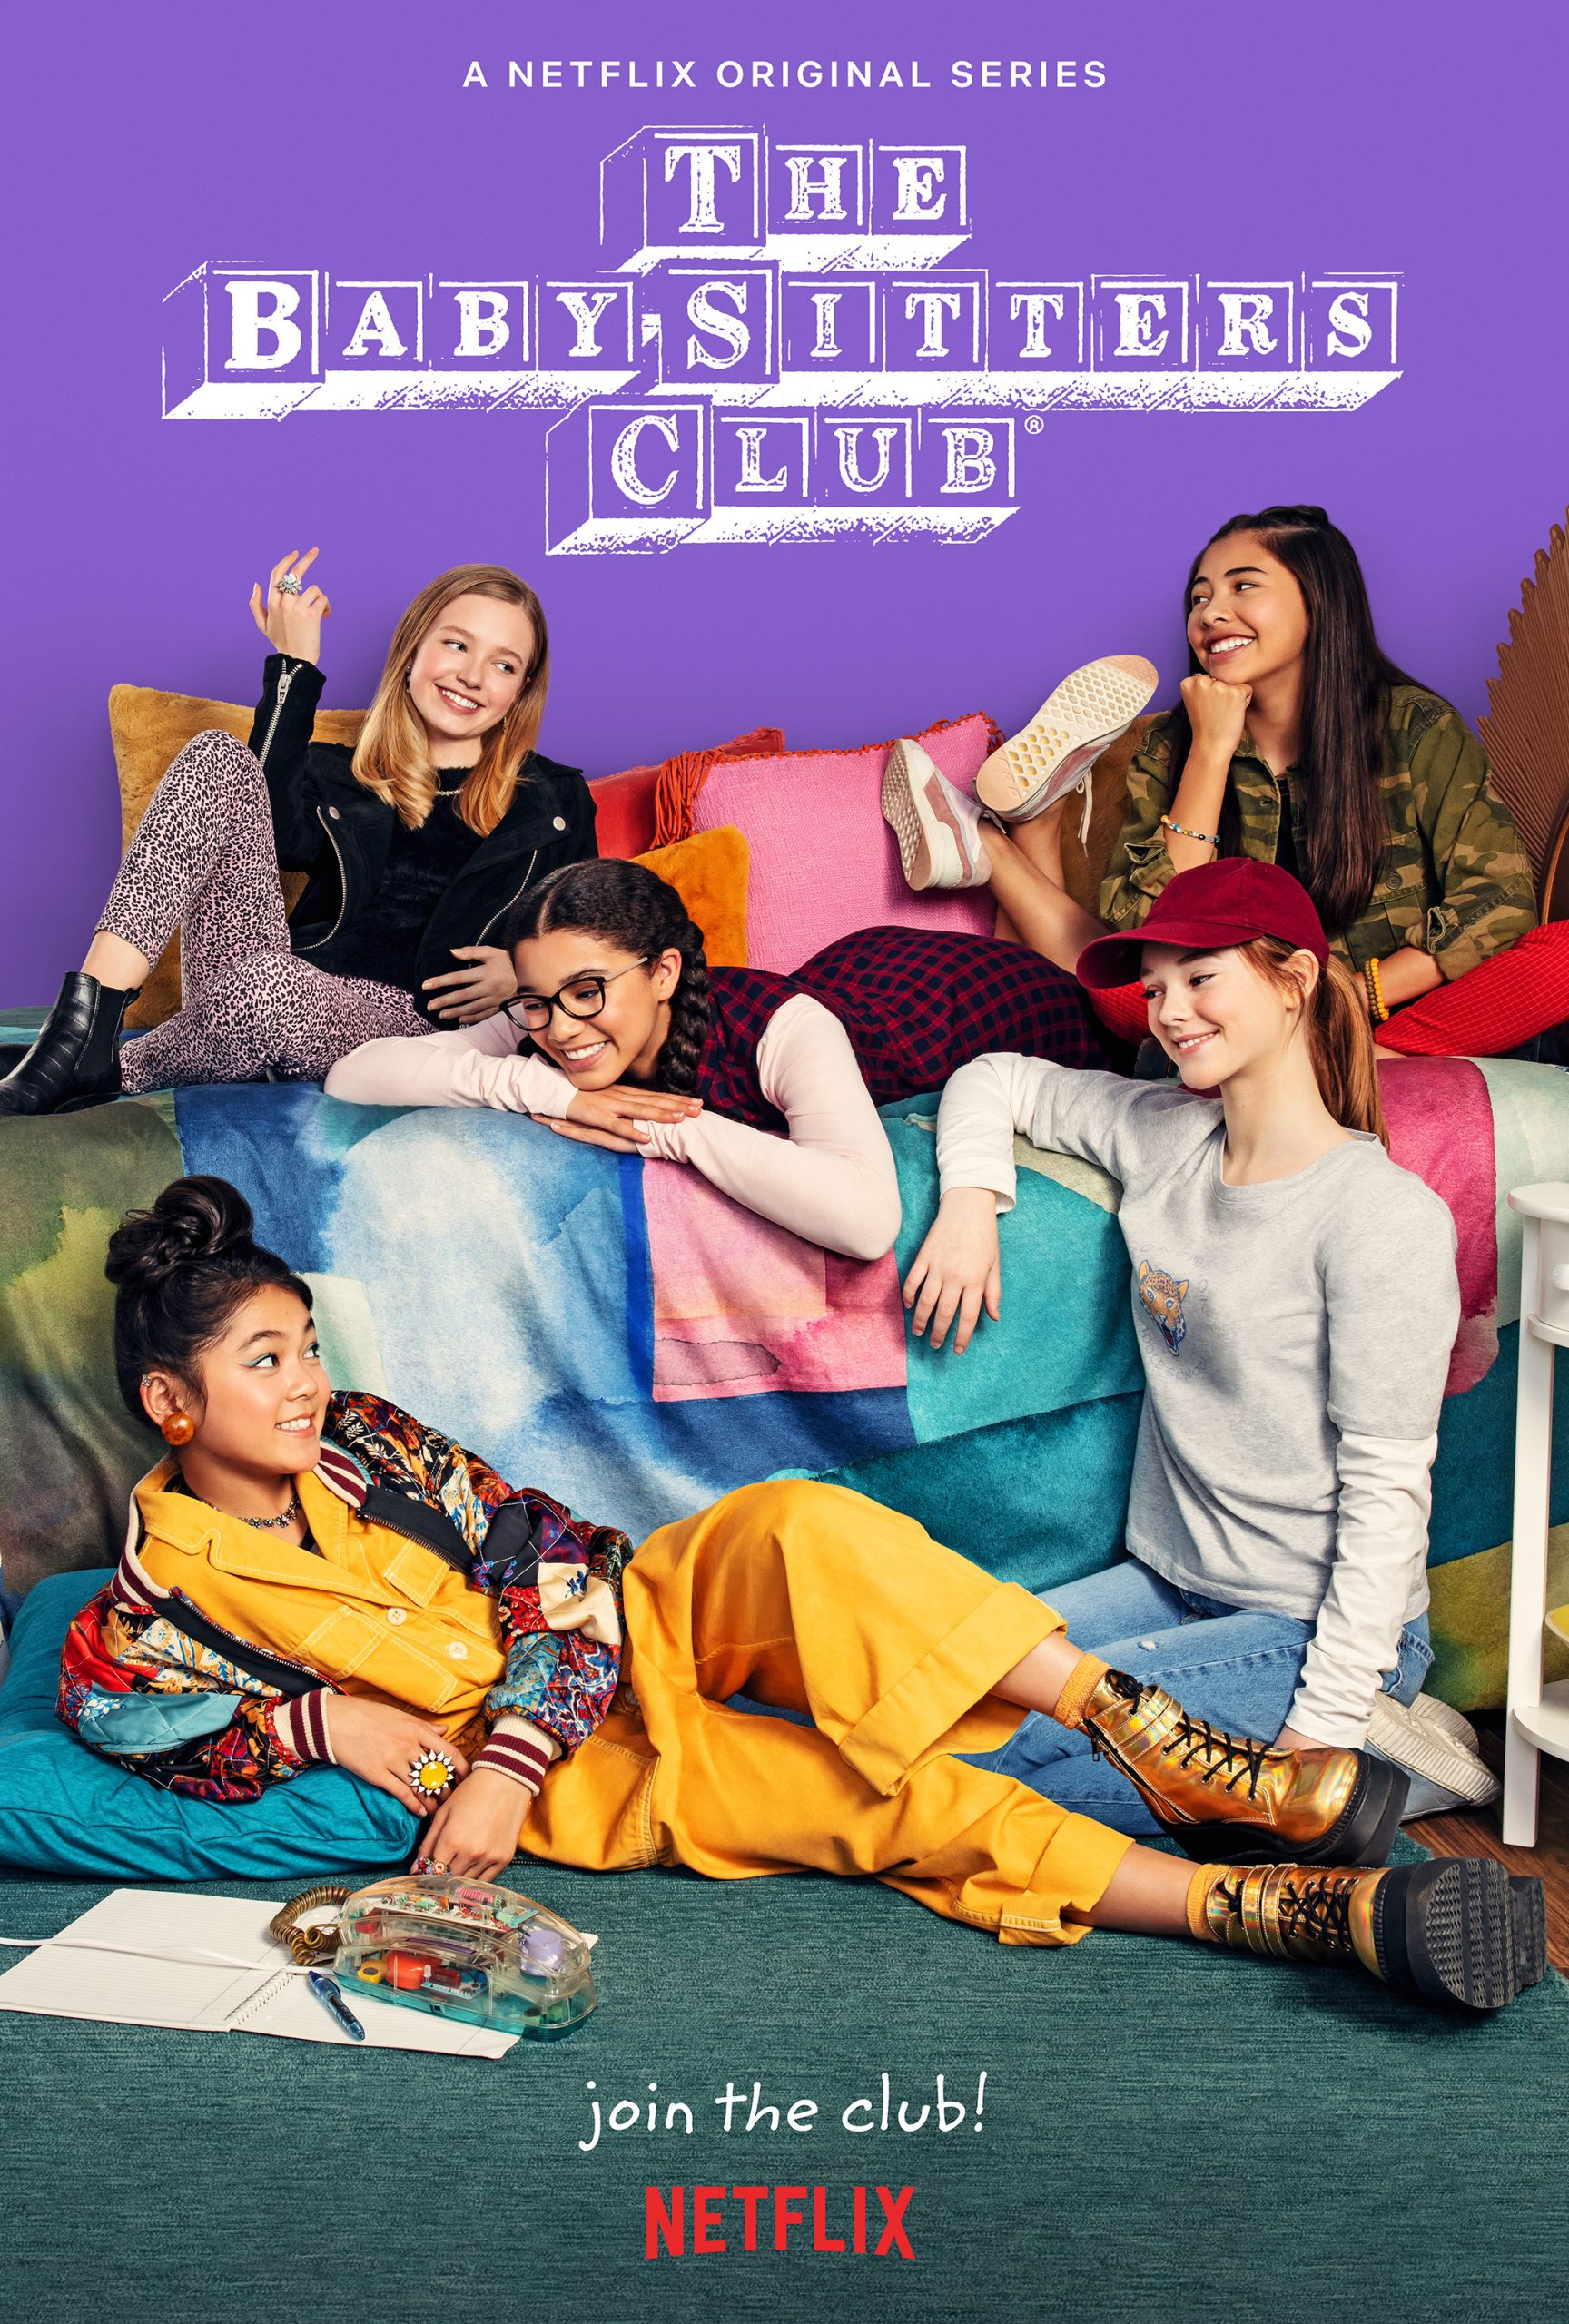 Netflix Baby-Sitters Club 2020, tv shows, 80's books, netflix original series, ann m martin